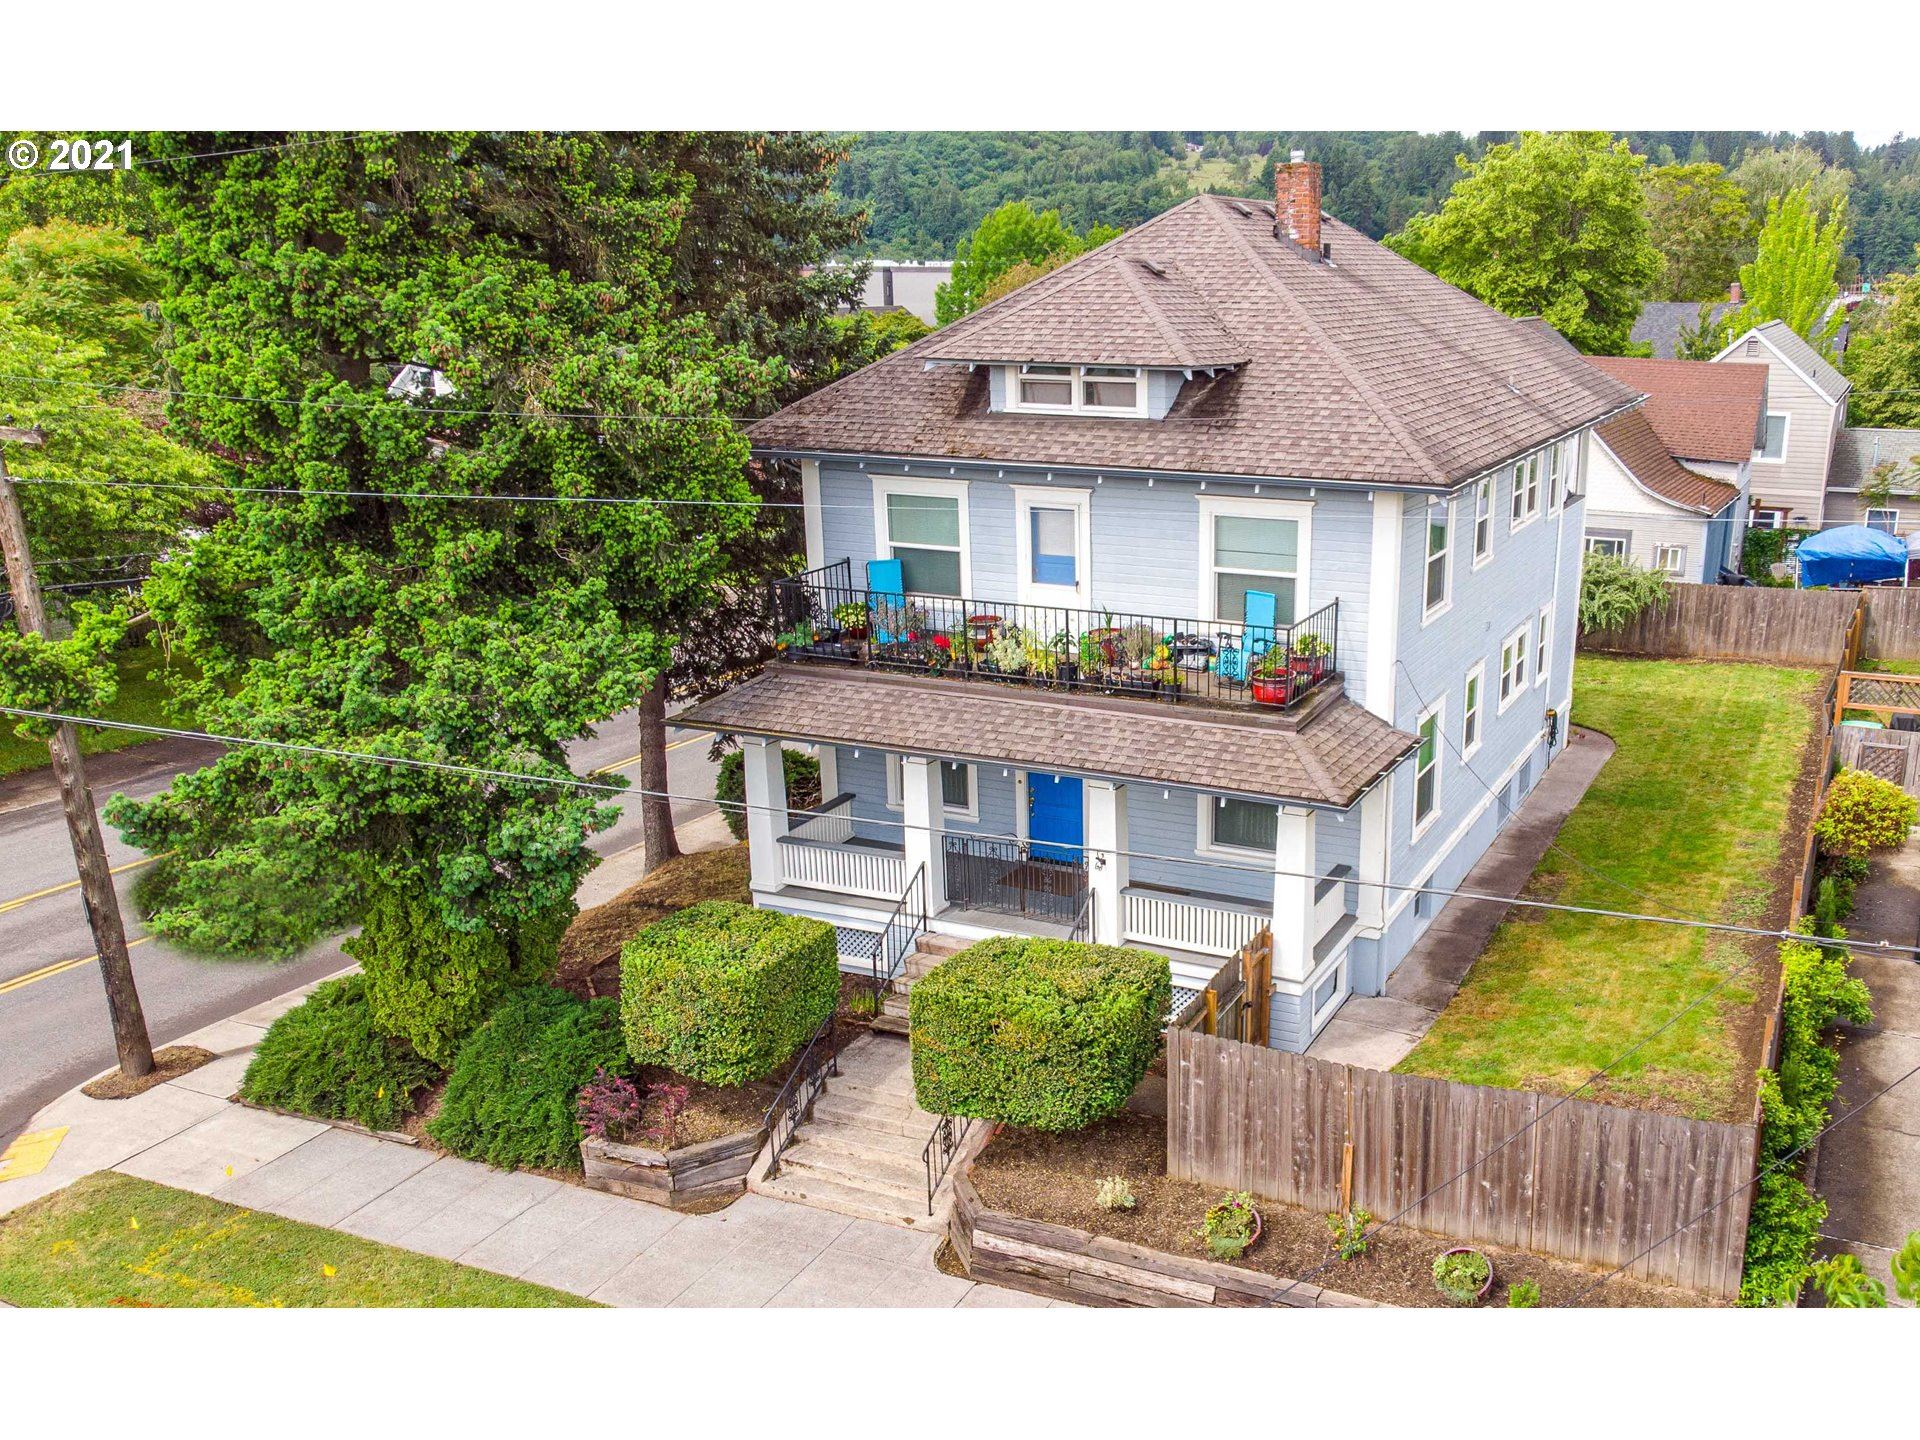 8085 SE 9TH AVE, Portland, OR 97202 - MLS#: 21063574